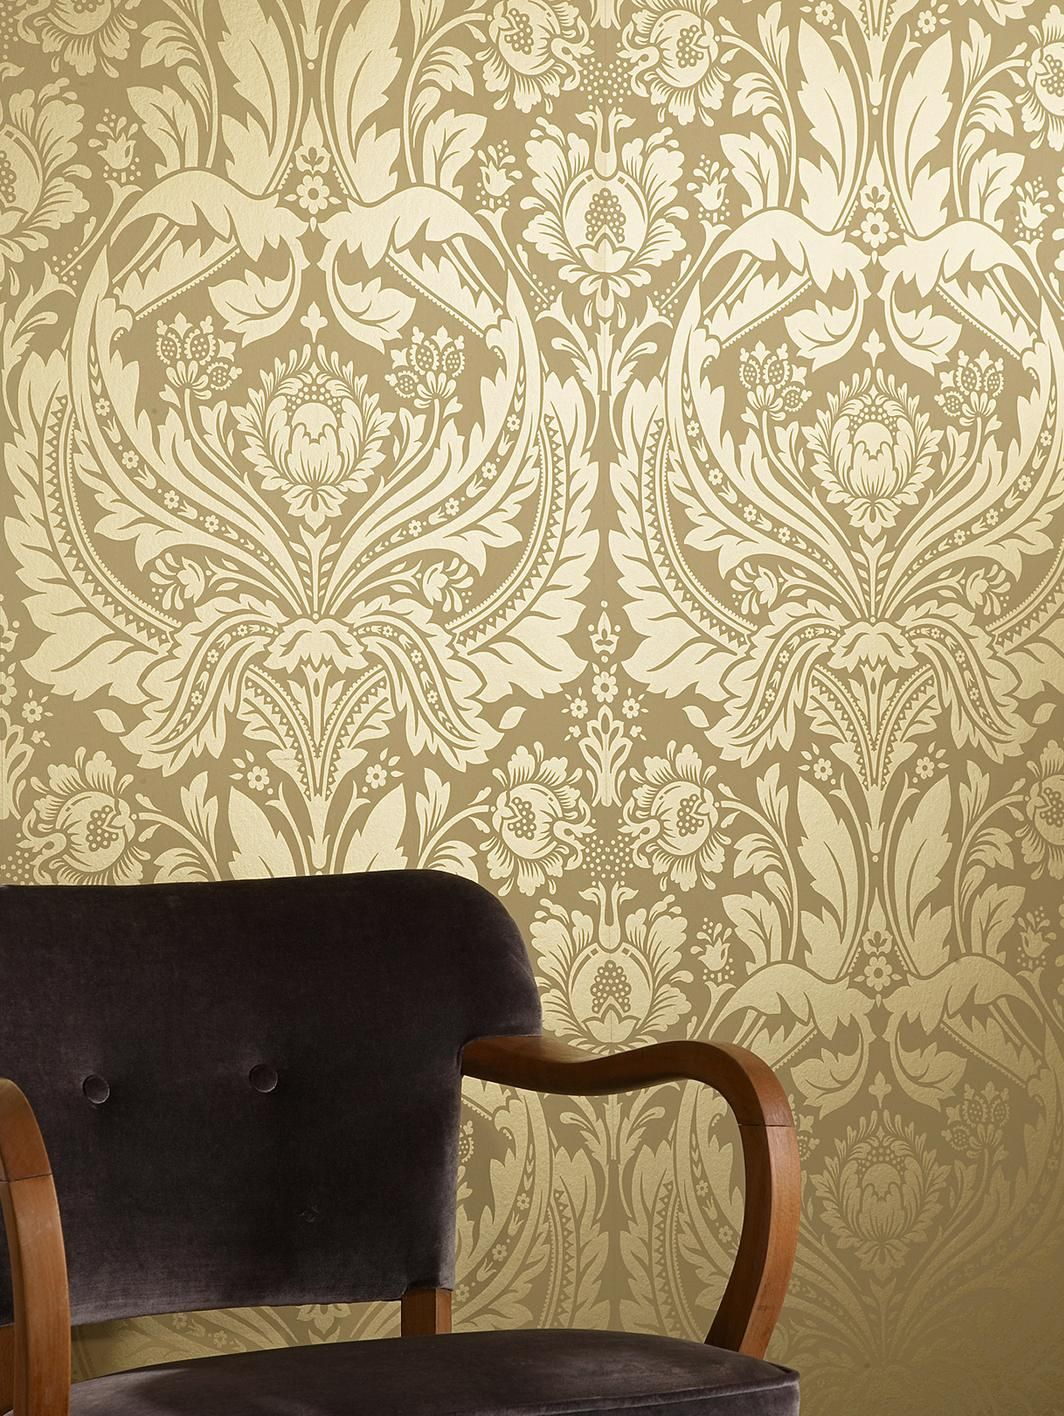 Desire Wallpaper - Mustard/Gold, http://www.very.co.uk/graham-brown ...